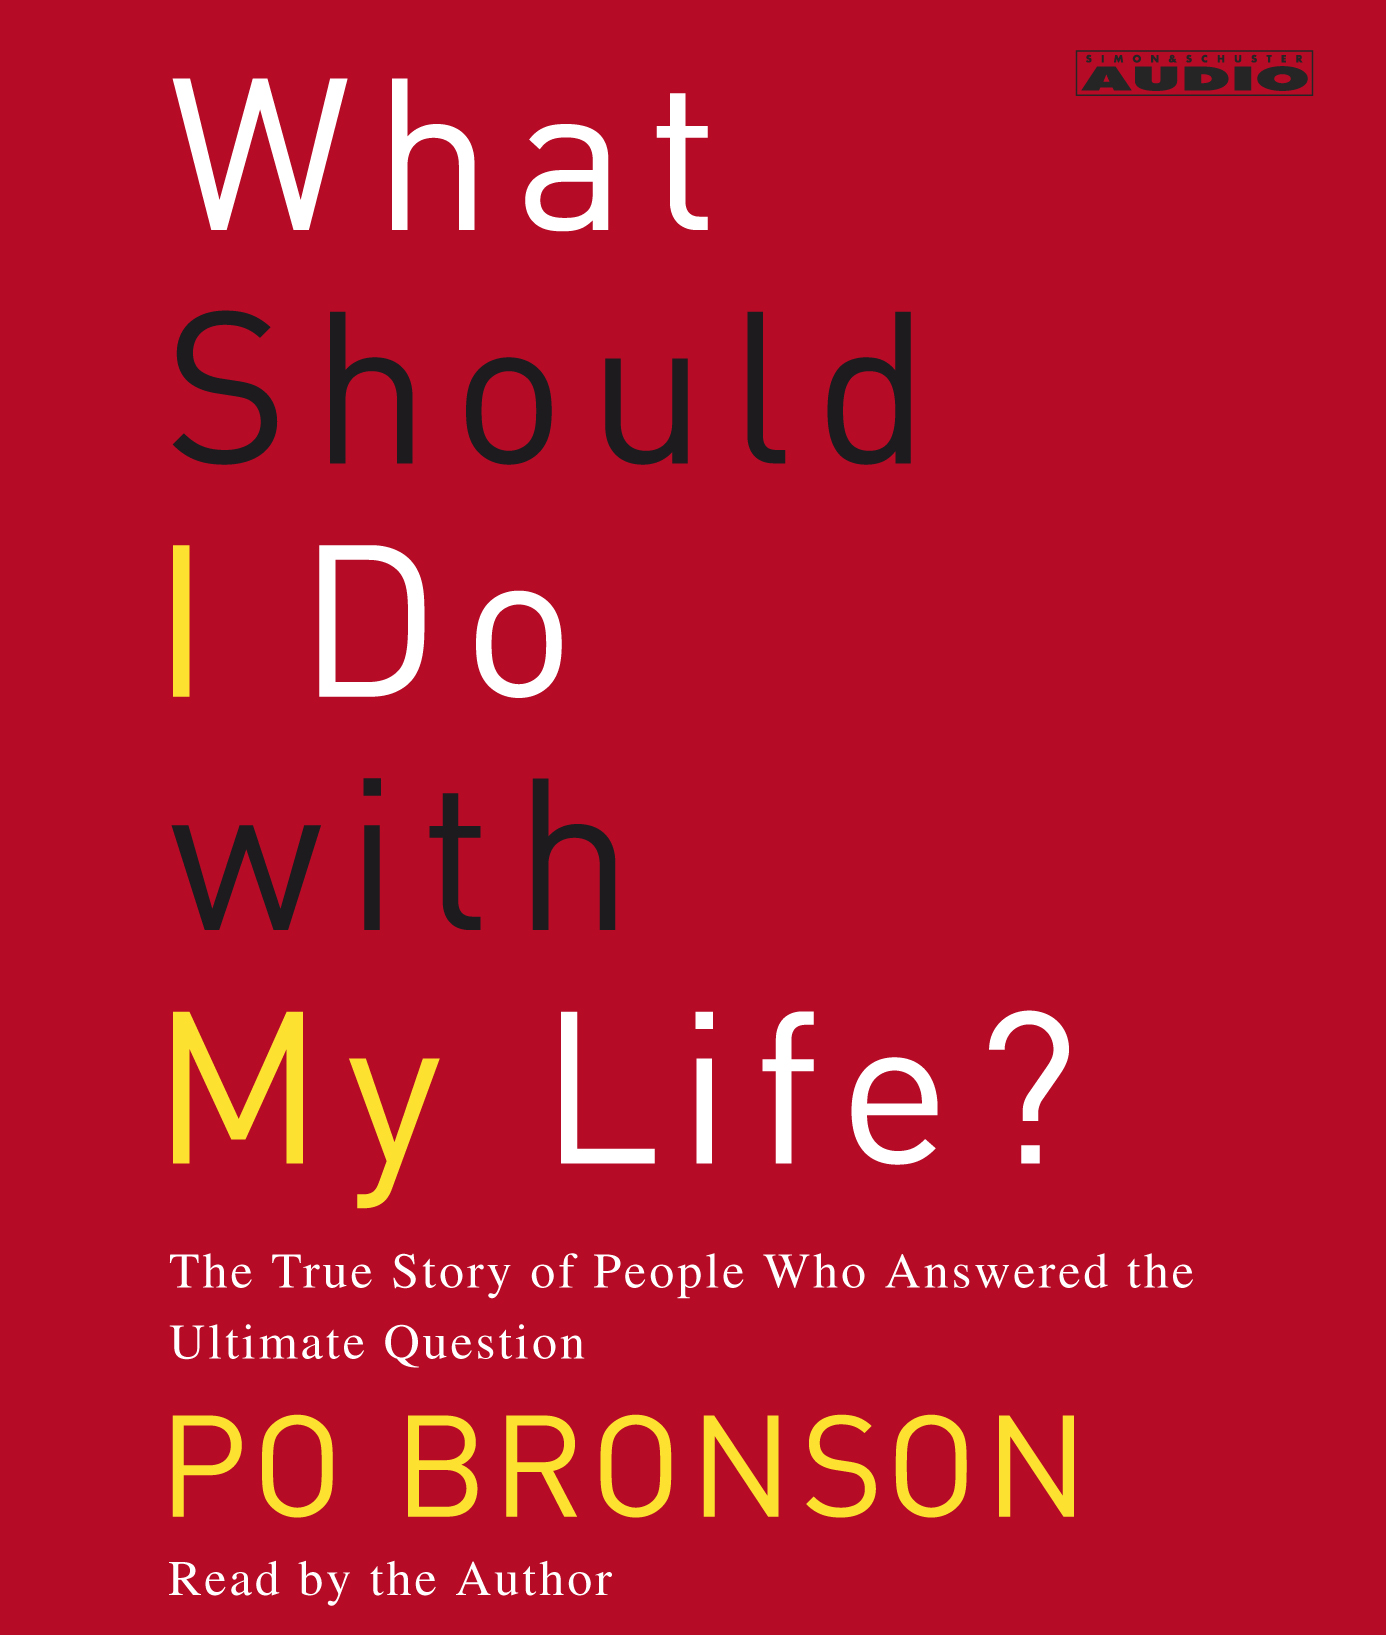 What Should I Do With My Life Audiobook by Po Bronson